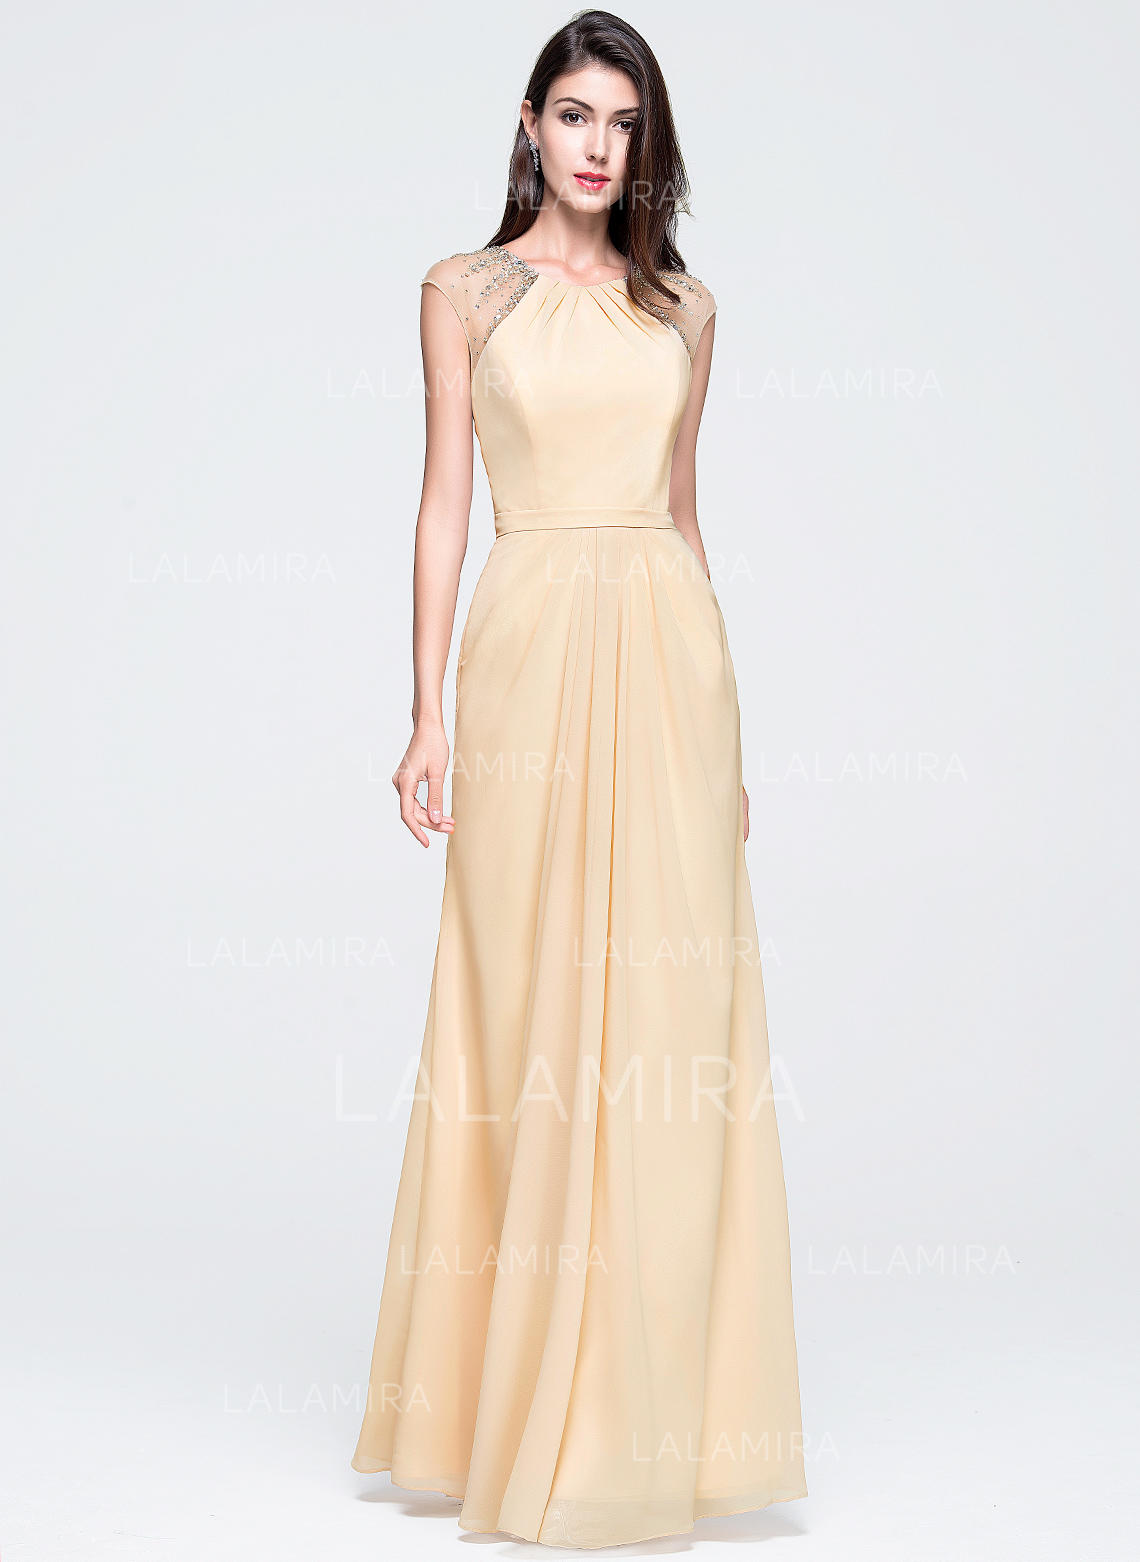 c47a48f374a A-Line Princess Prom Dresses Glamorous Floor-Length Scoop Neck Sleeveless  (018070350. Loading zoom